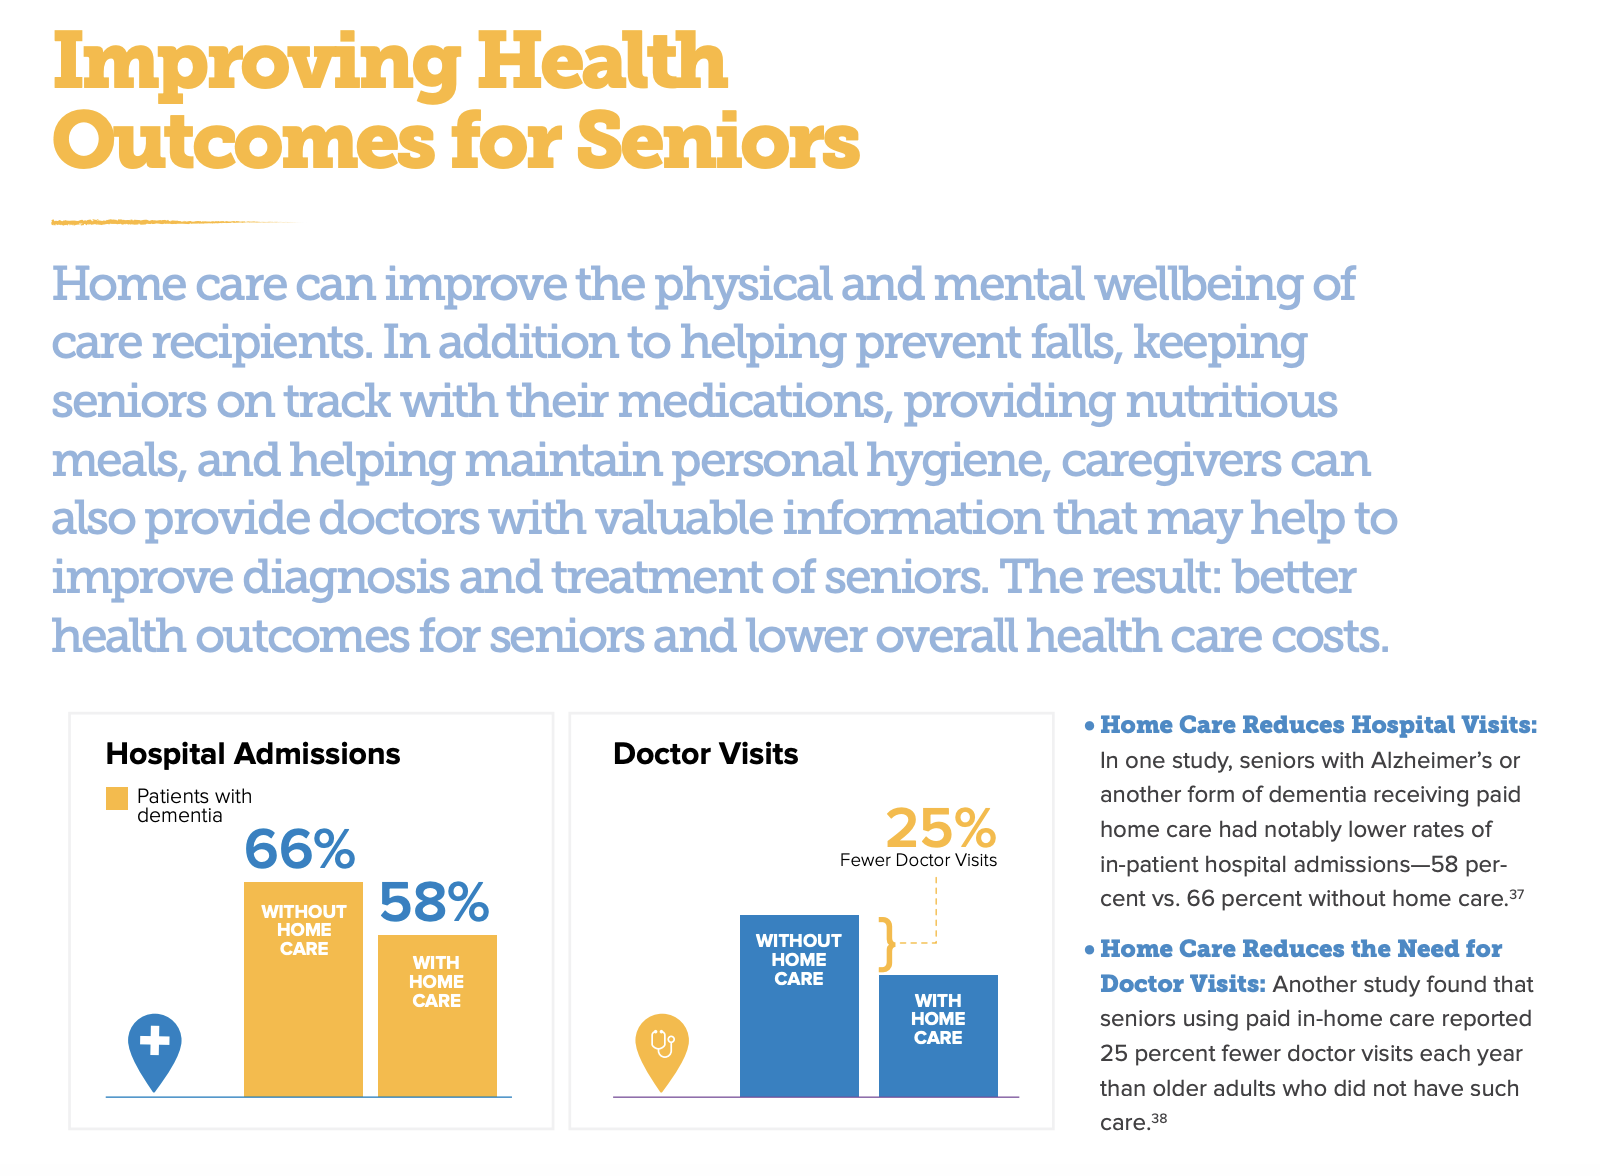 Improving Health Outcomes for Seniors Data from the Home Care Association of America